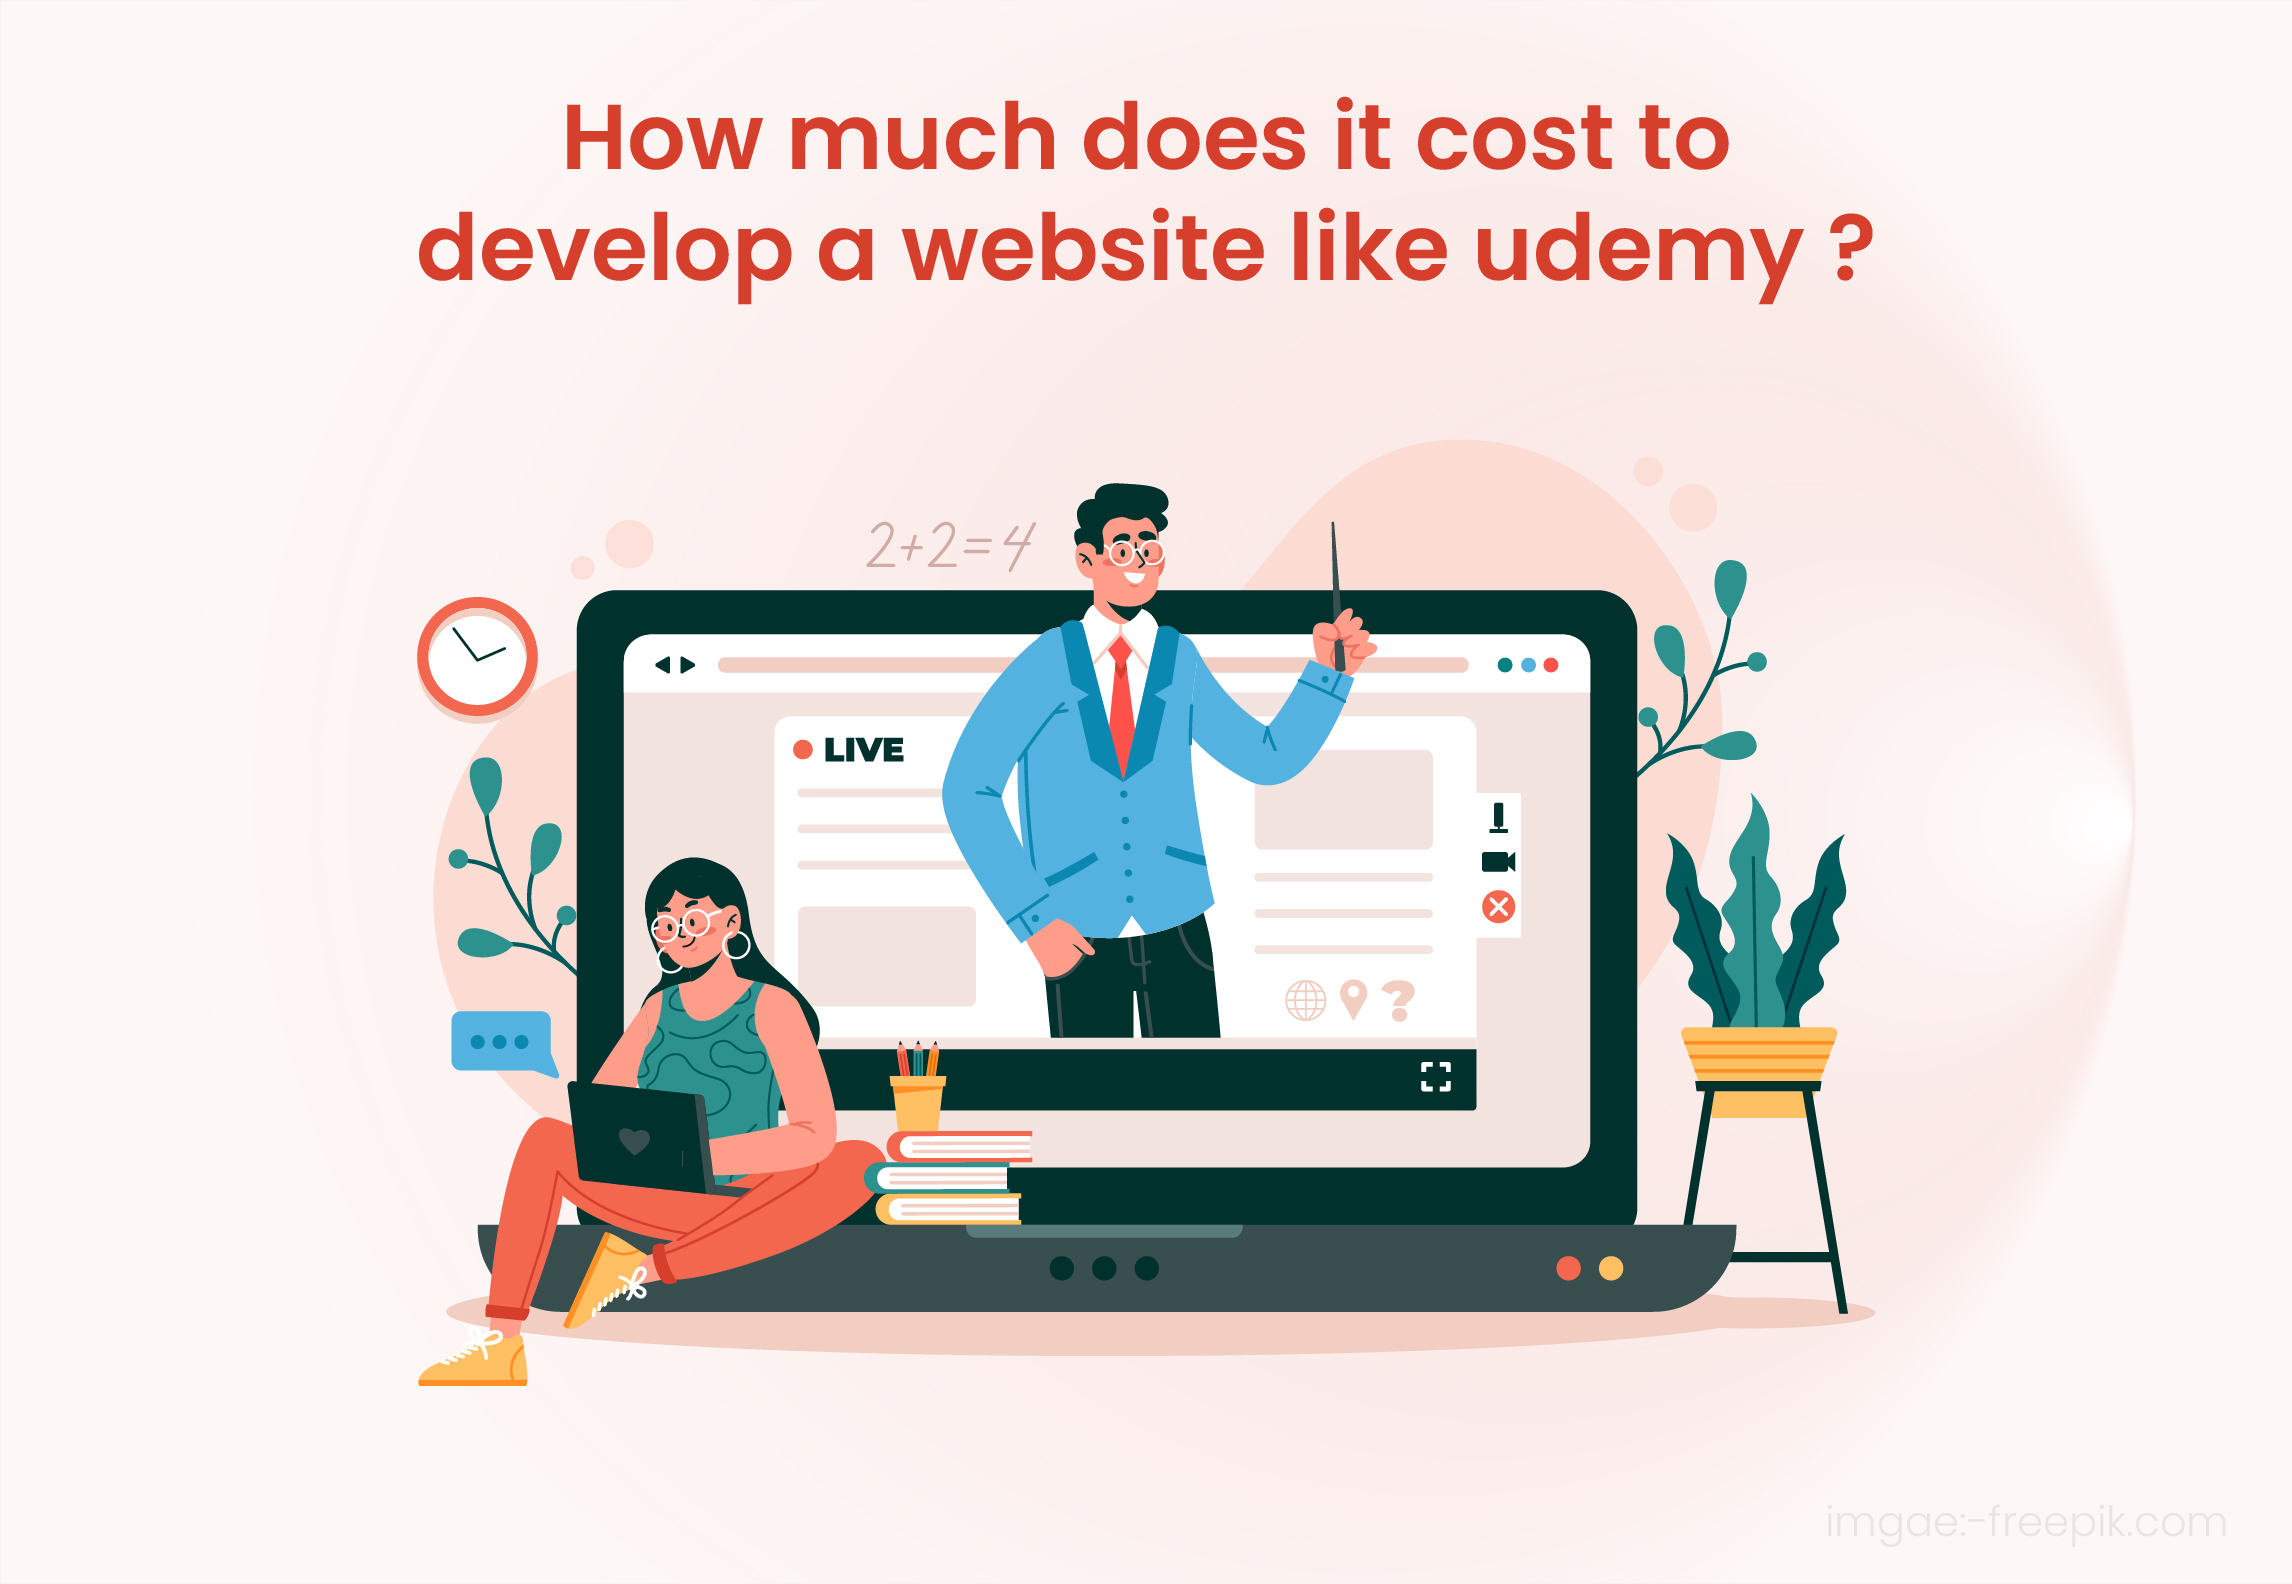 cost of website like Udemy